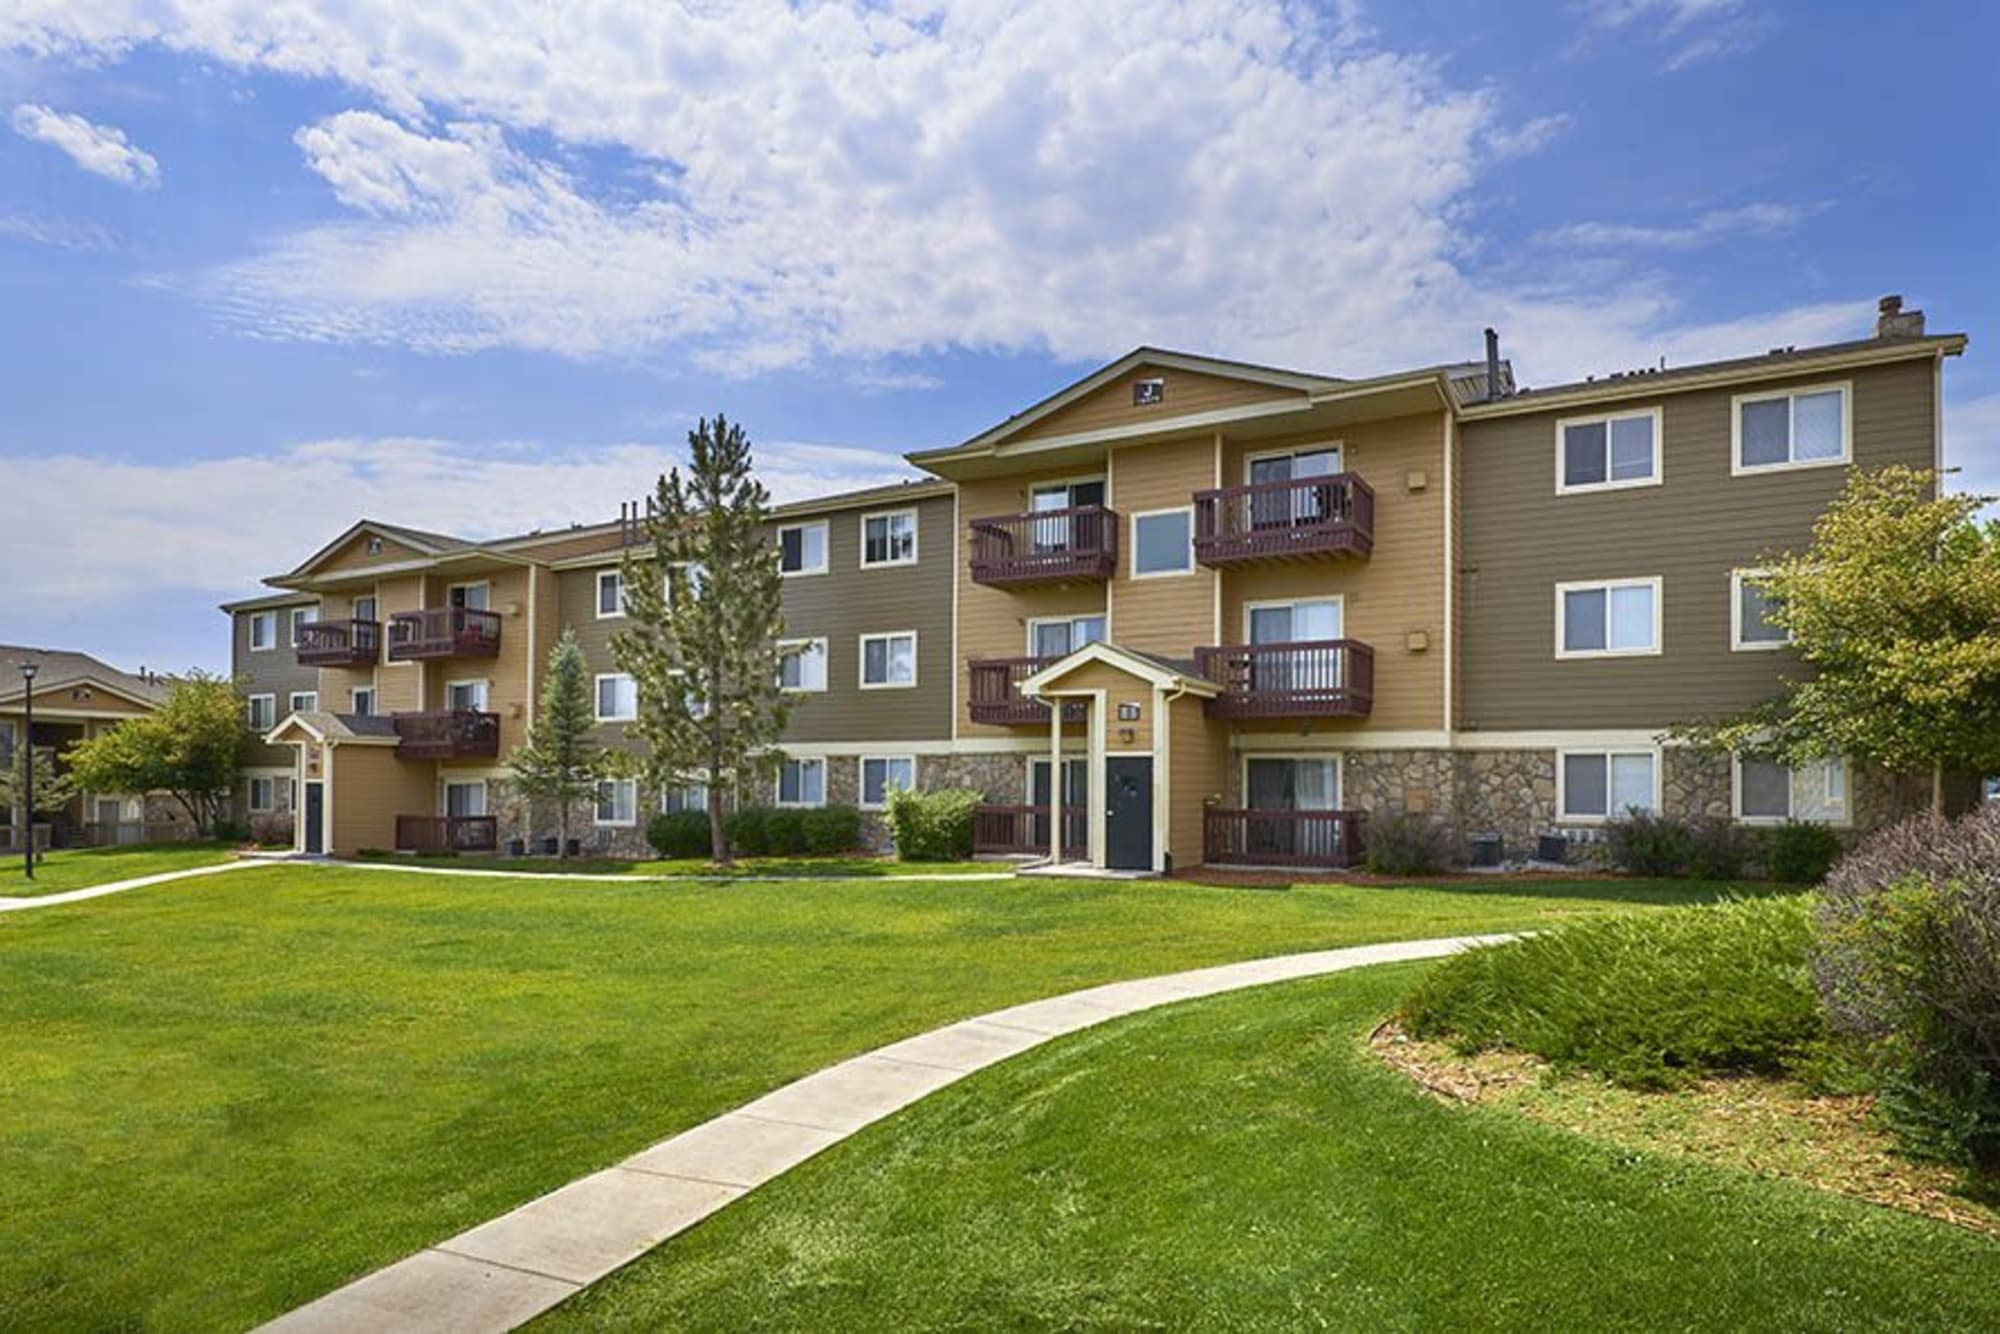 The exterior of Crossroads at City Center Apartments in Aurora, Colorado